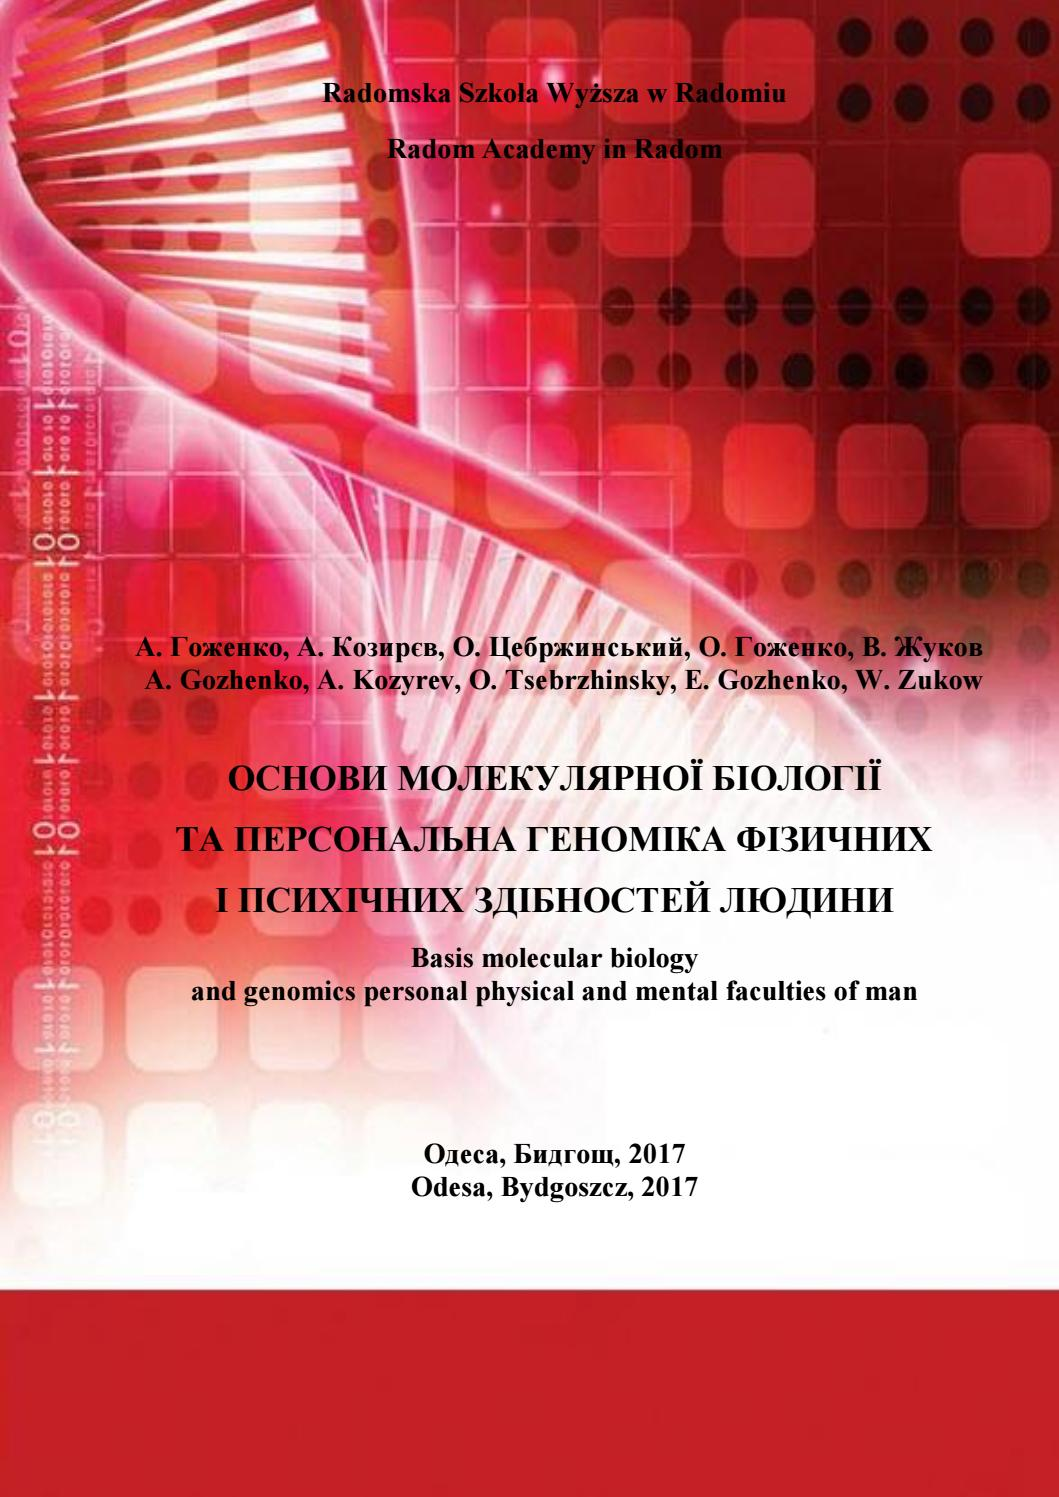 Basis molecular biology and genomics personal physical and mental faculties  of man by ZBIR IKF WKFZIT UKW - issuu de42857c03f24